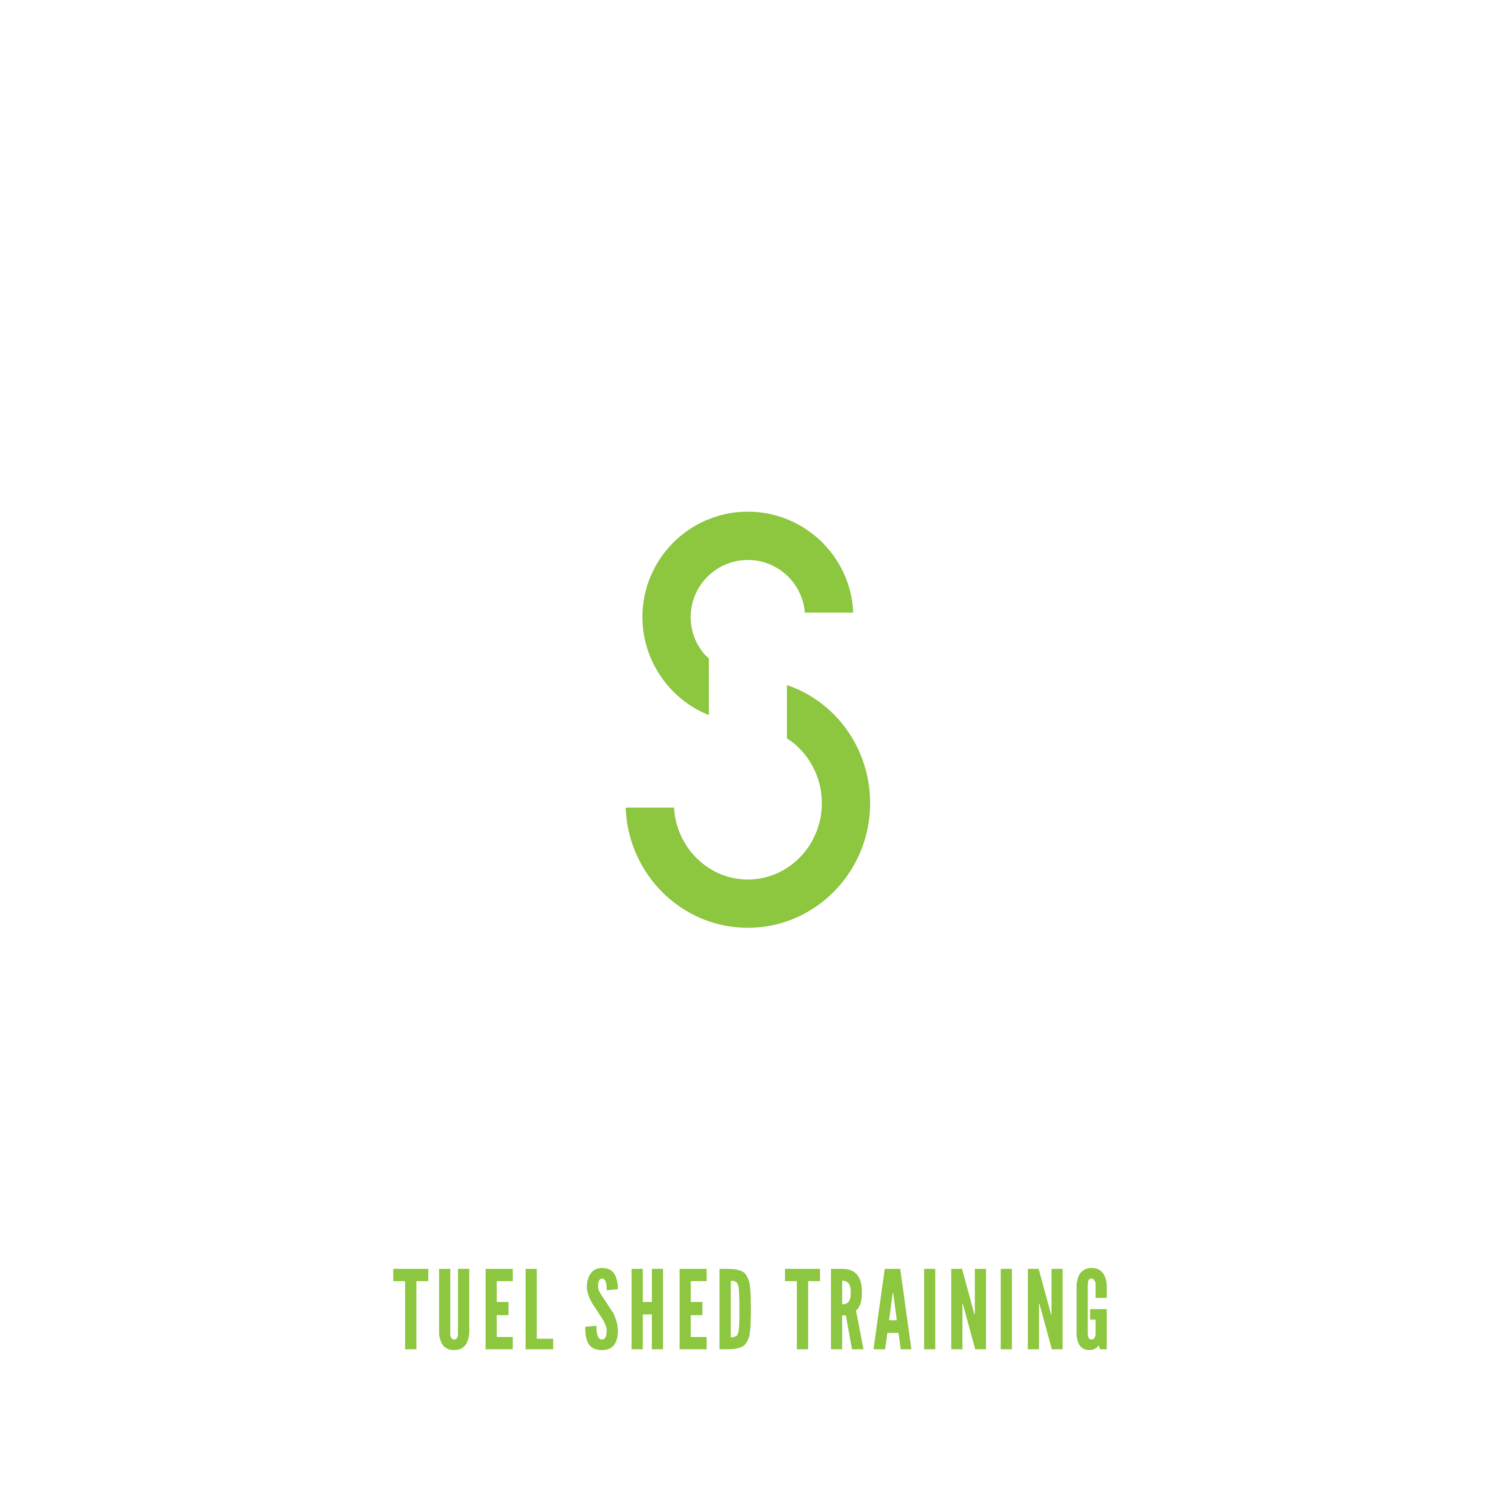 Tuel Shed Training